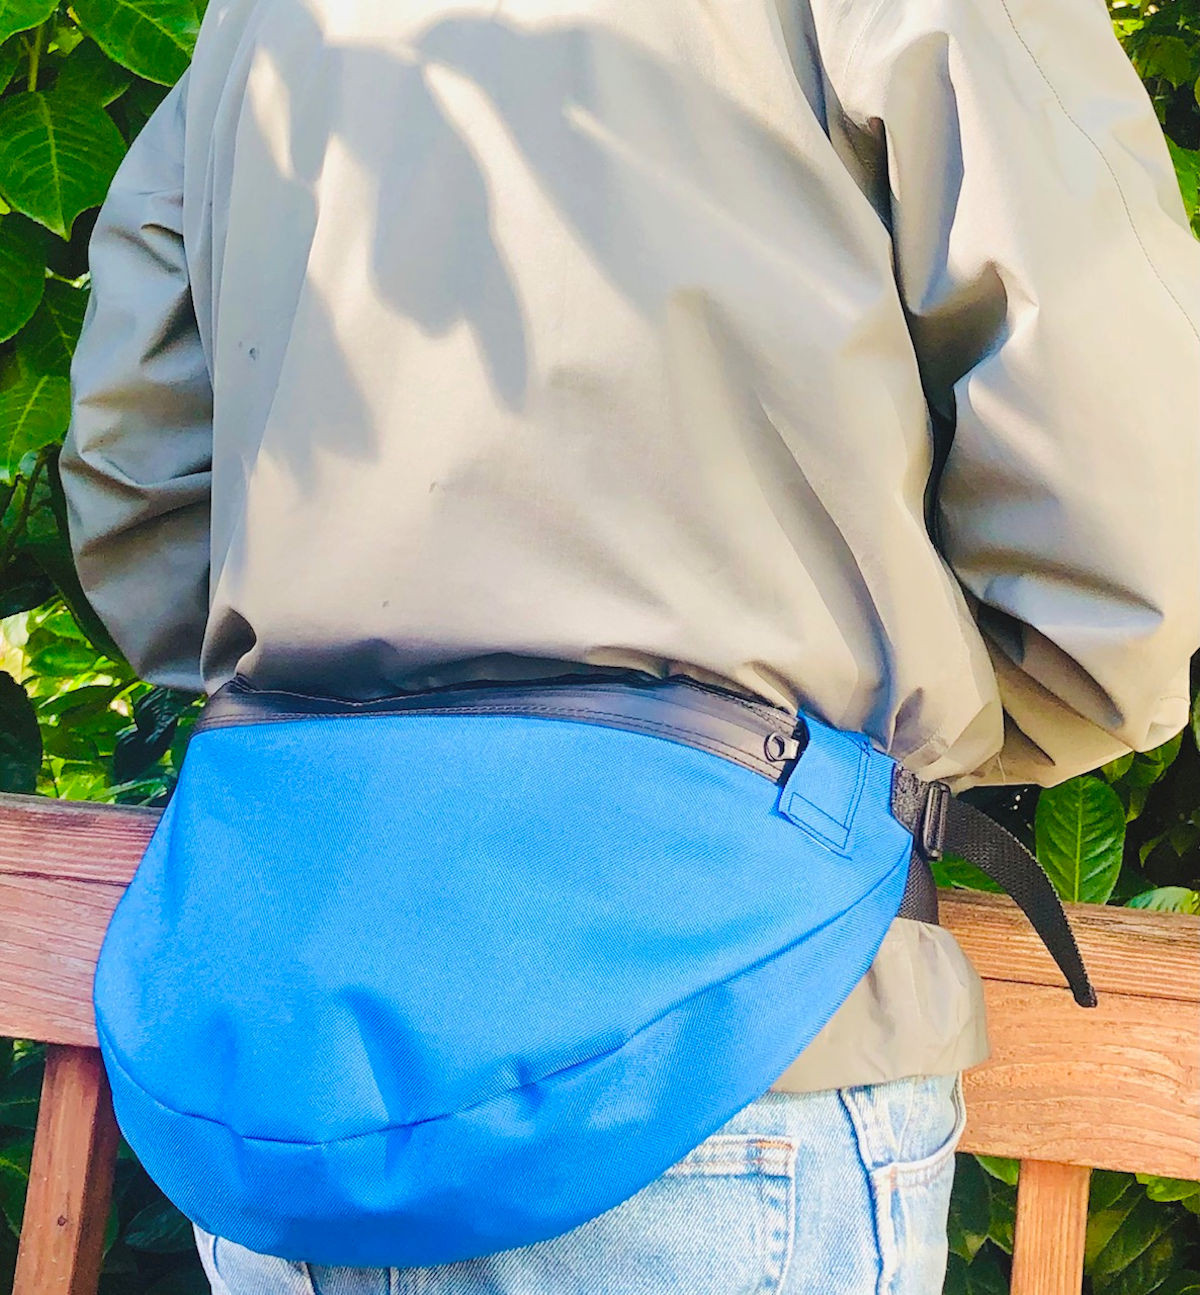 example - older model Water Proof Wading Waist Pack